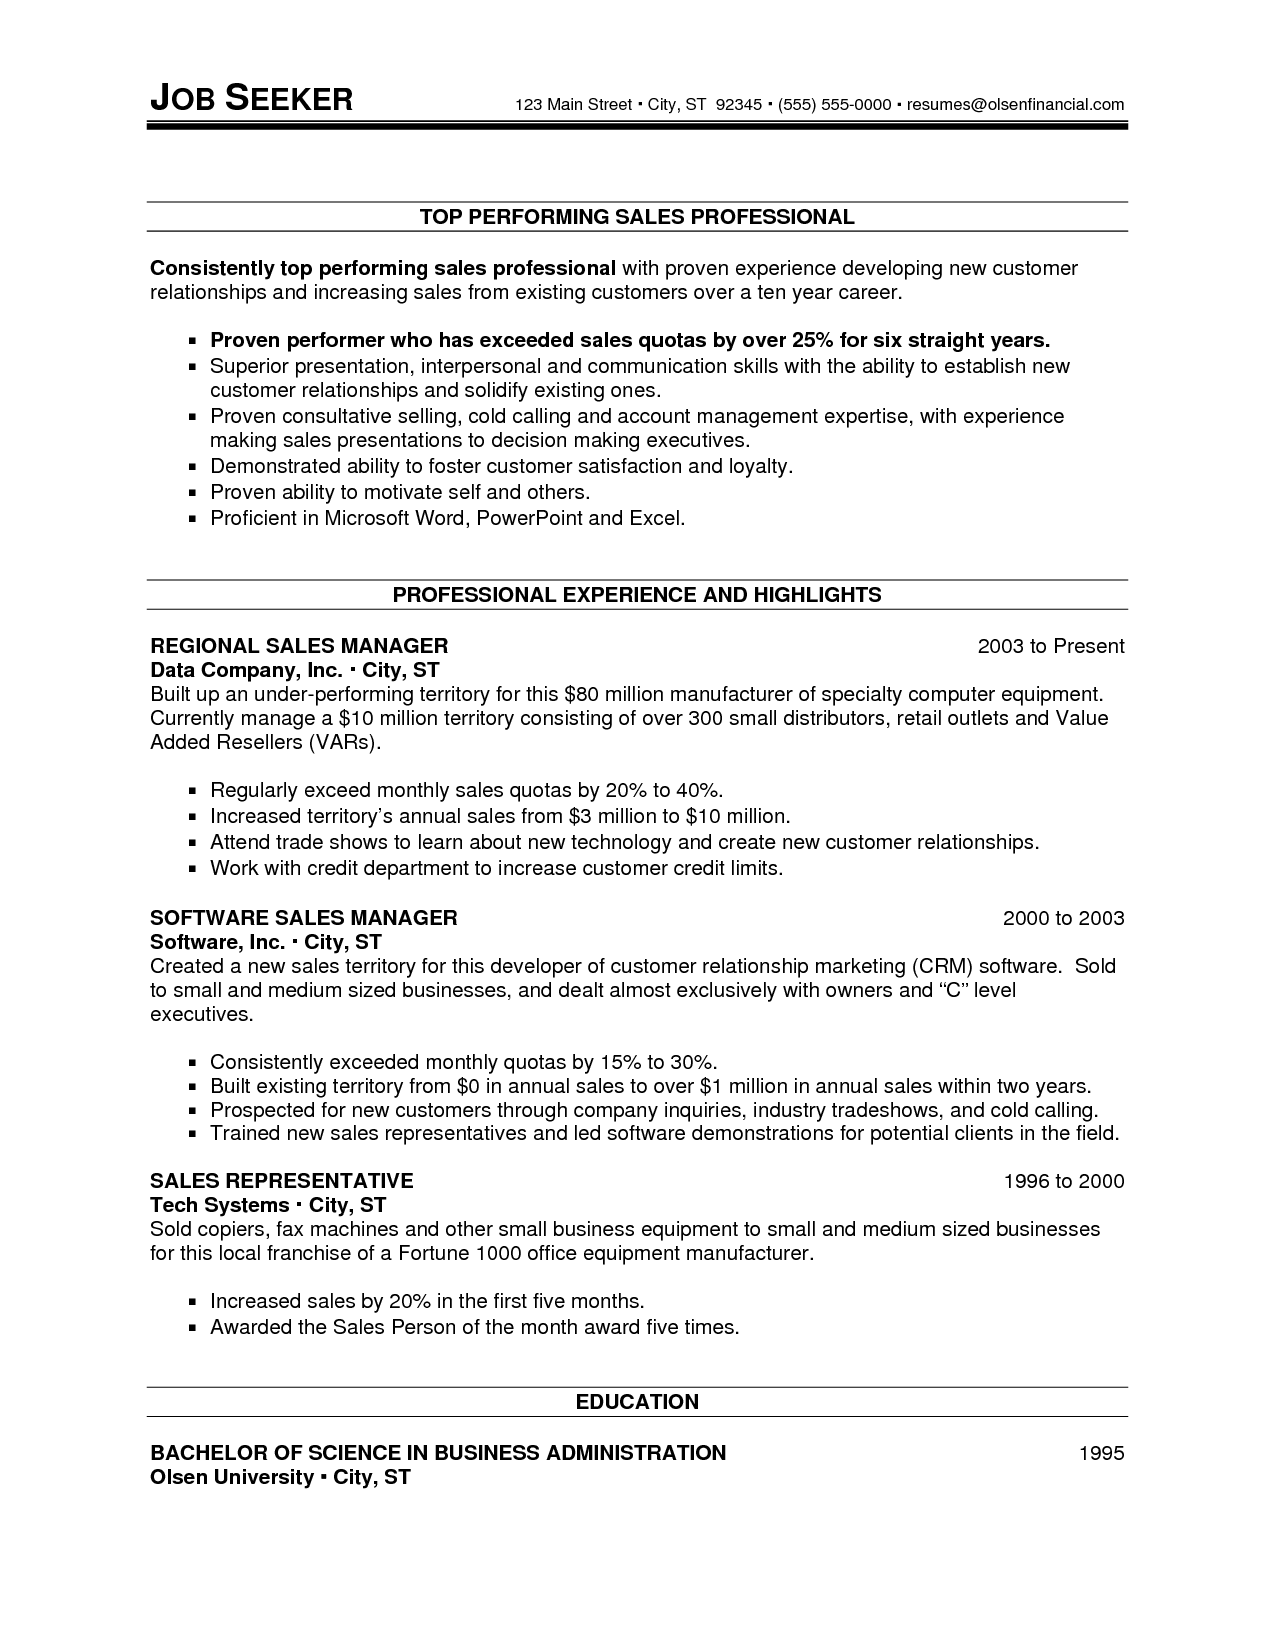 Copier Sales Resume Examples resumecareerinfocopier – How to Write a Sales Resume